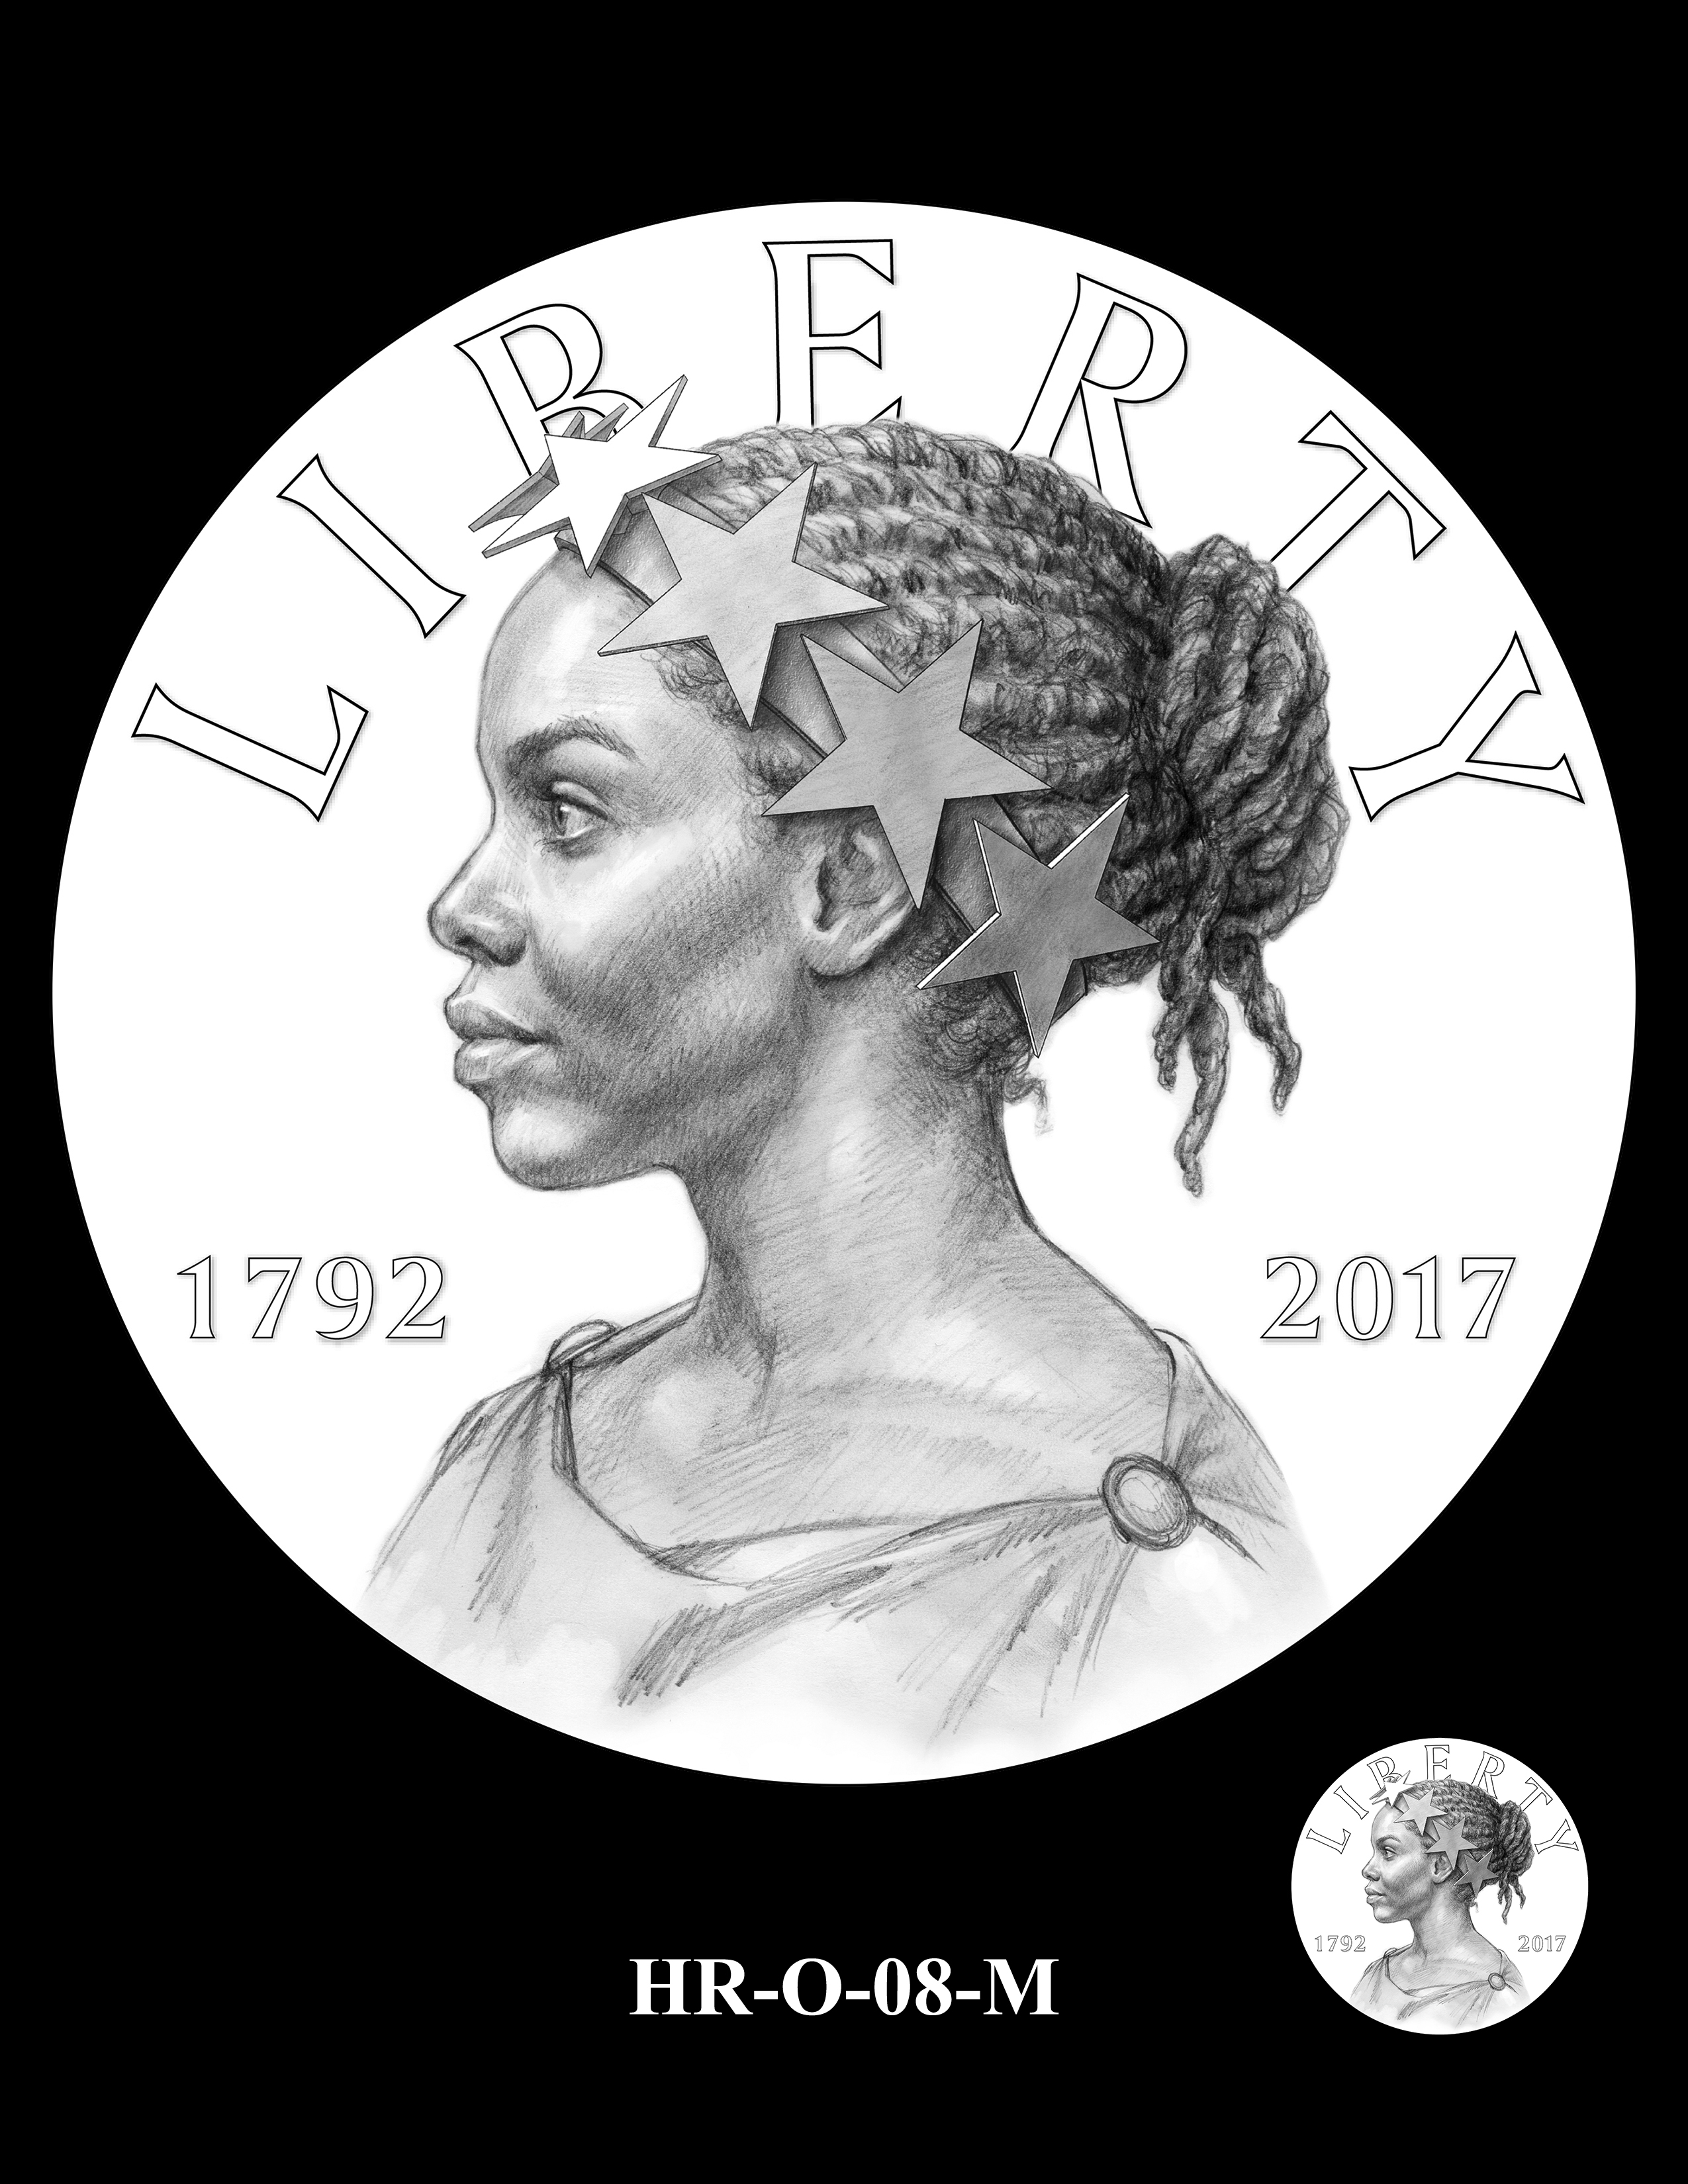 HR-O-08-M - 2017 American Liberty High Relief Gold Coin and Silver Medal Program